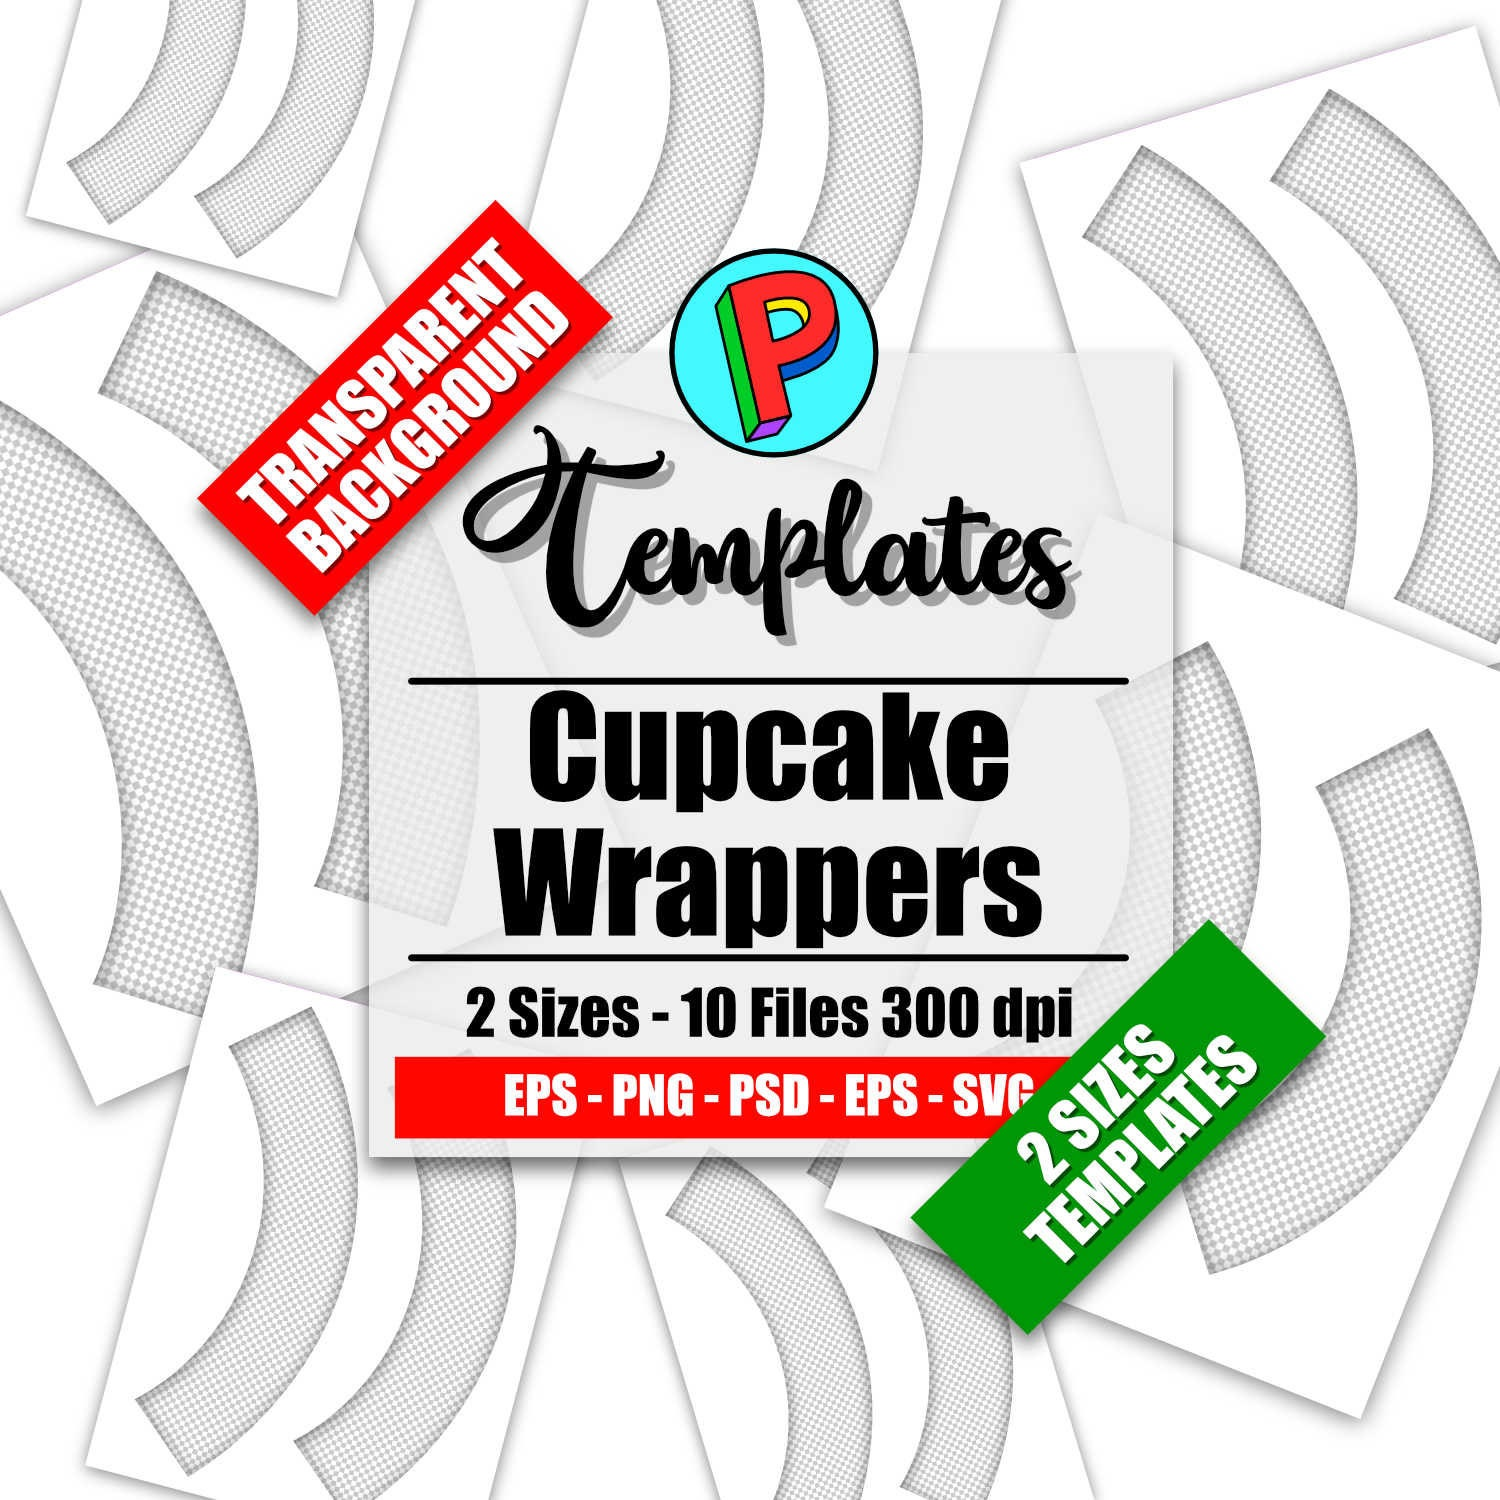 TEMPLATES - Cupcake Wrappers - 10 Files eps svg png psd letter size 300 dpi  Vector eps svg, Photoshop Layered psd, Transparent Png Files